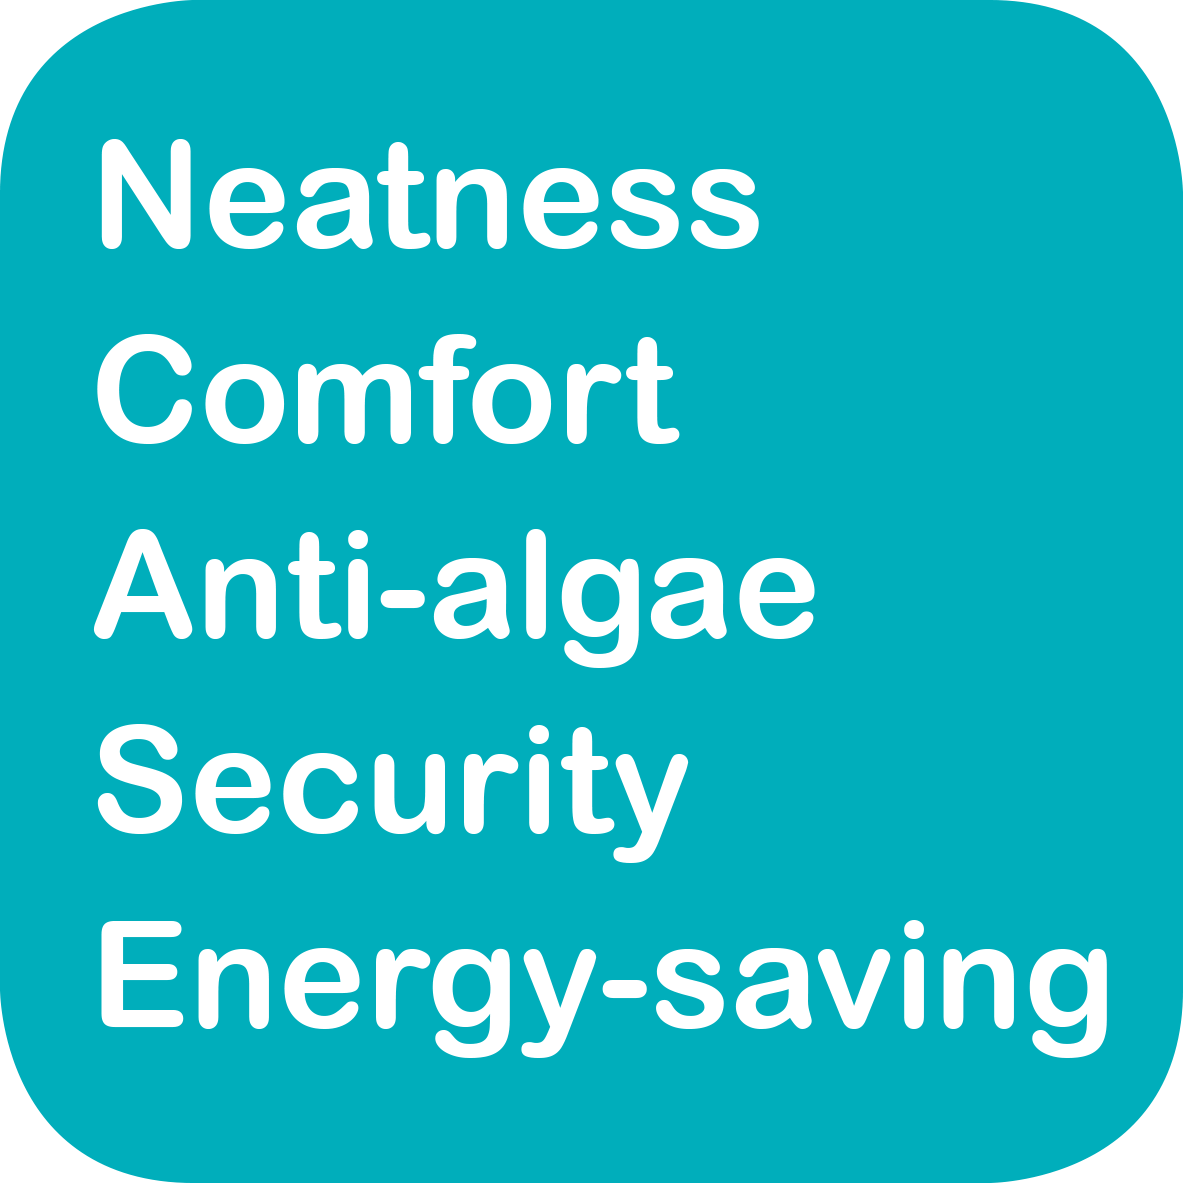 Neatness, Comfort, Anti-algae, Security, Energy-saving